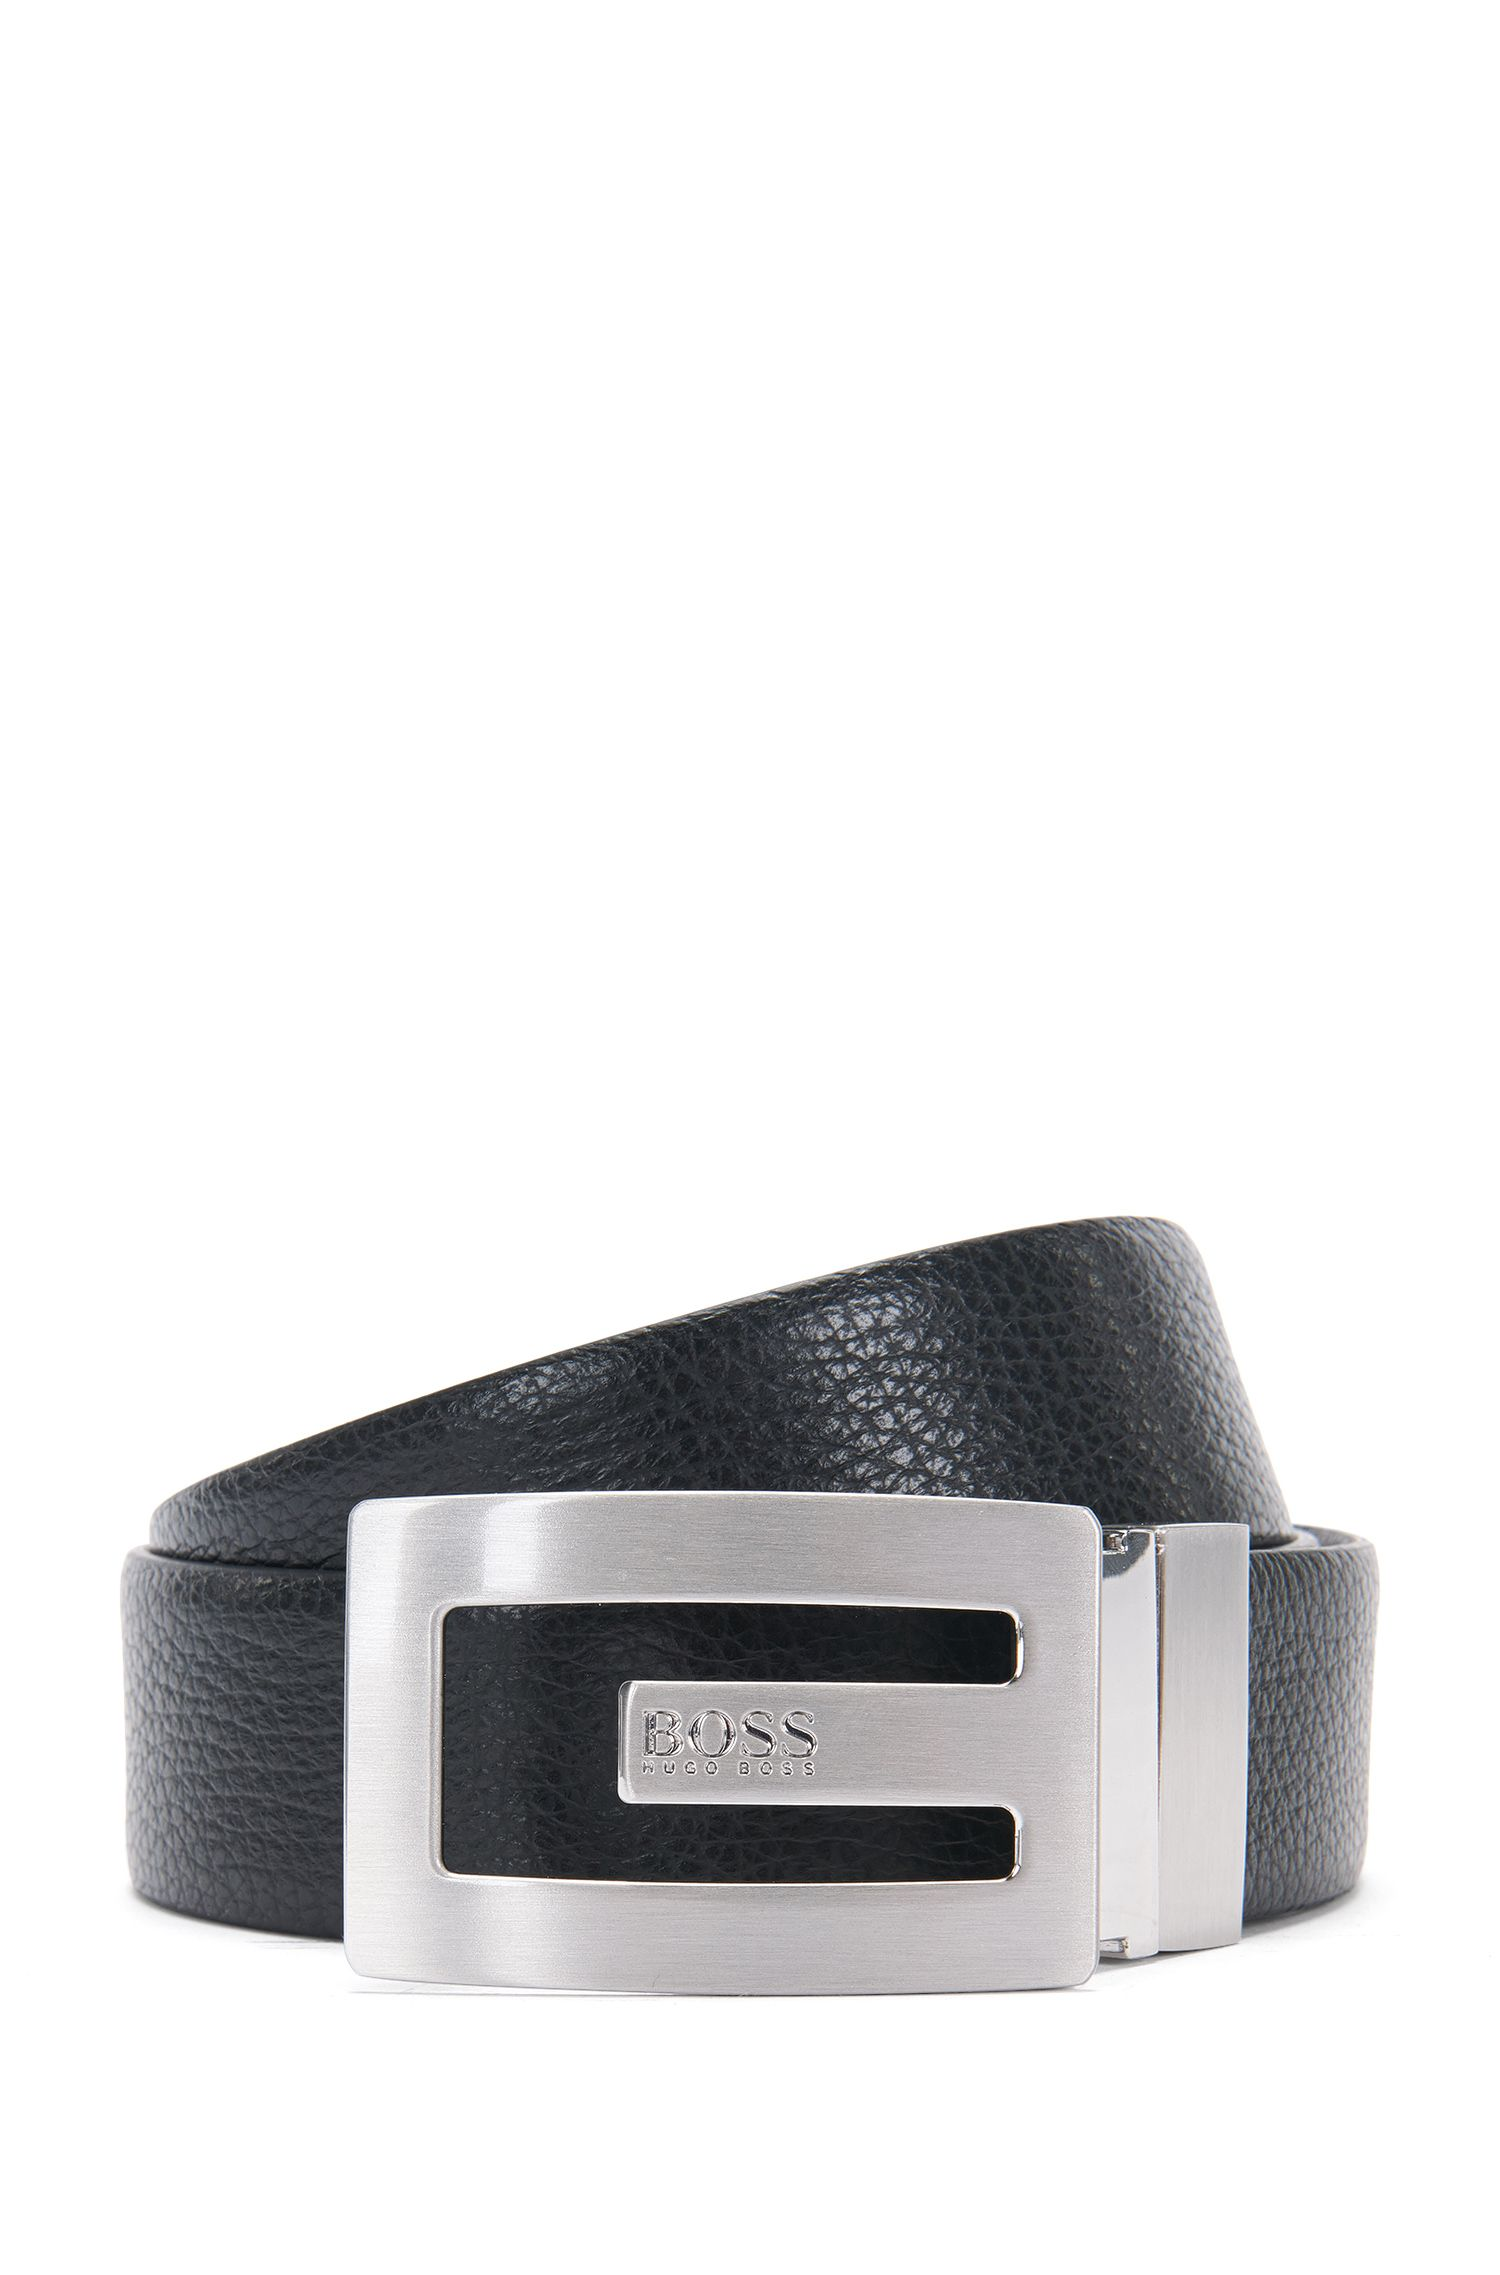 Reversible leather belt with distinctive clamping buckle: 'Ranny_Sr35_ltgr'